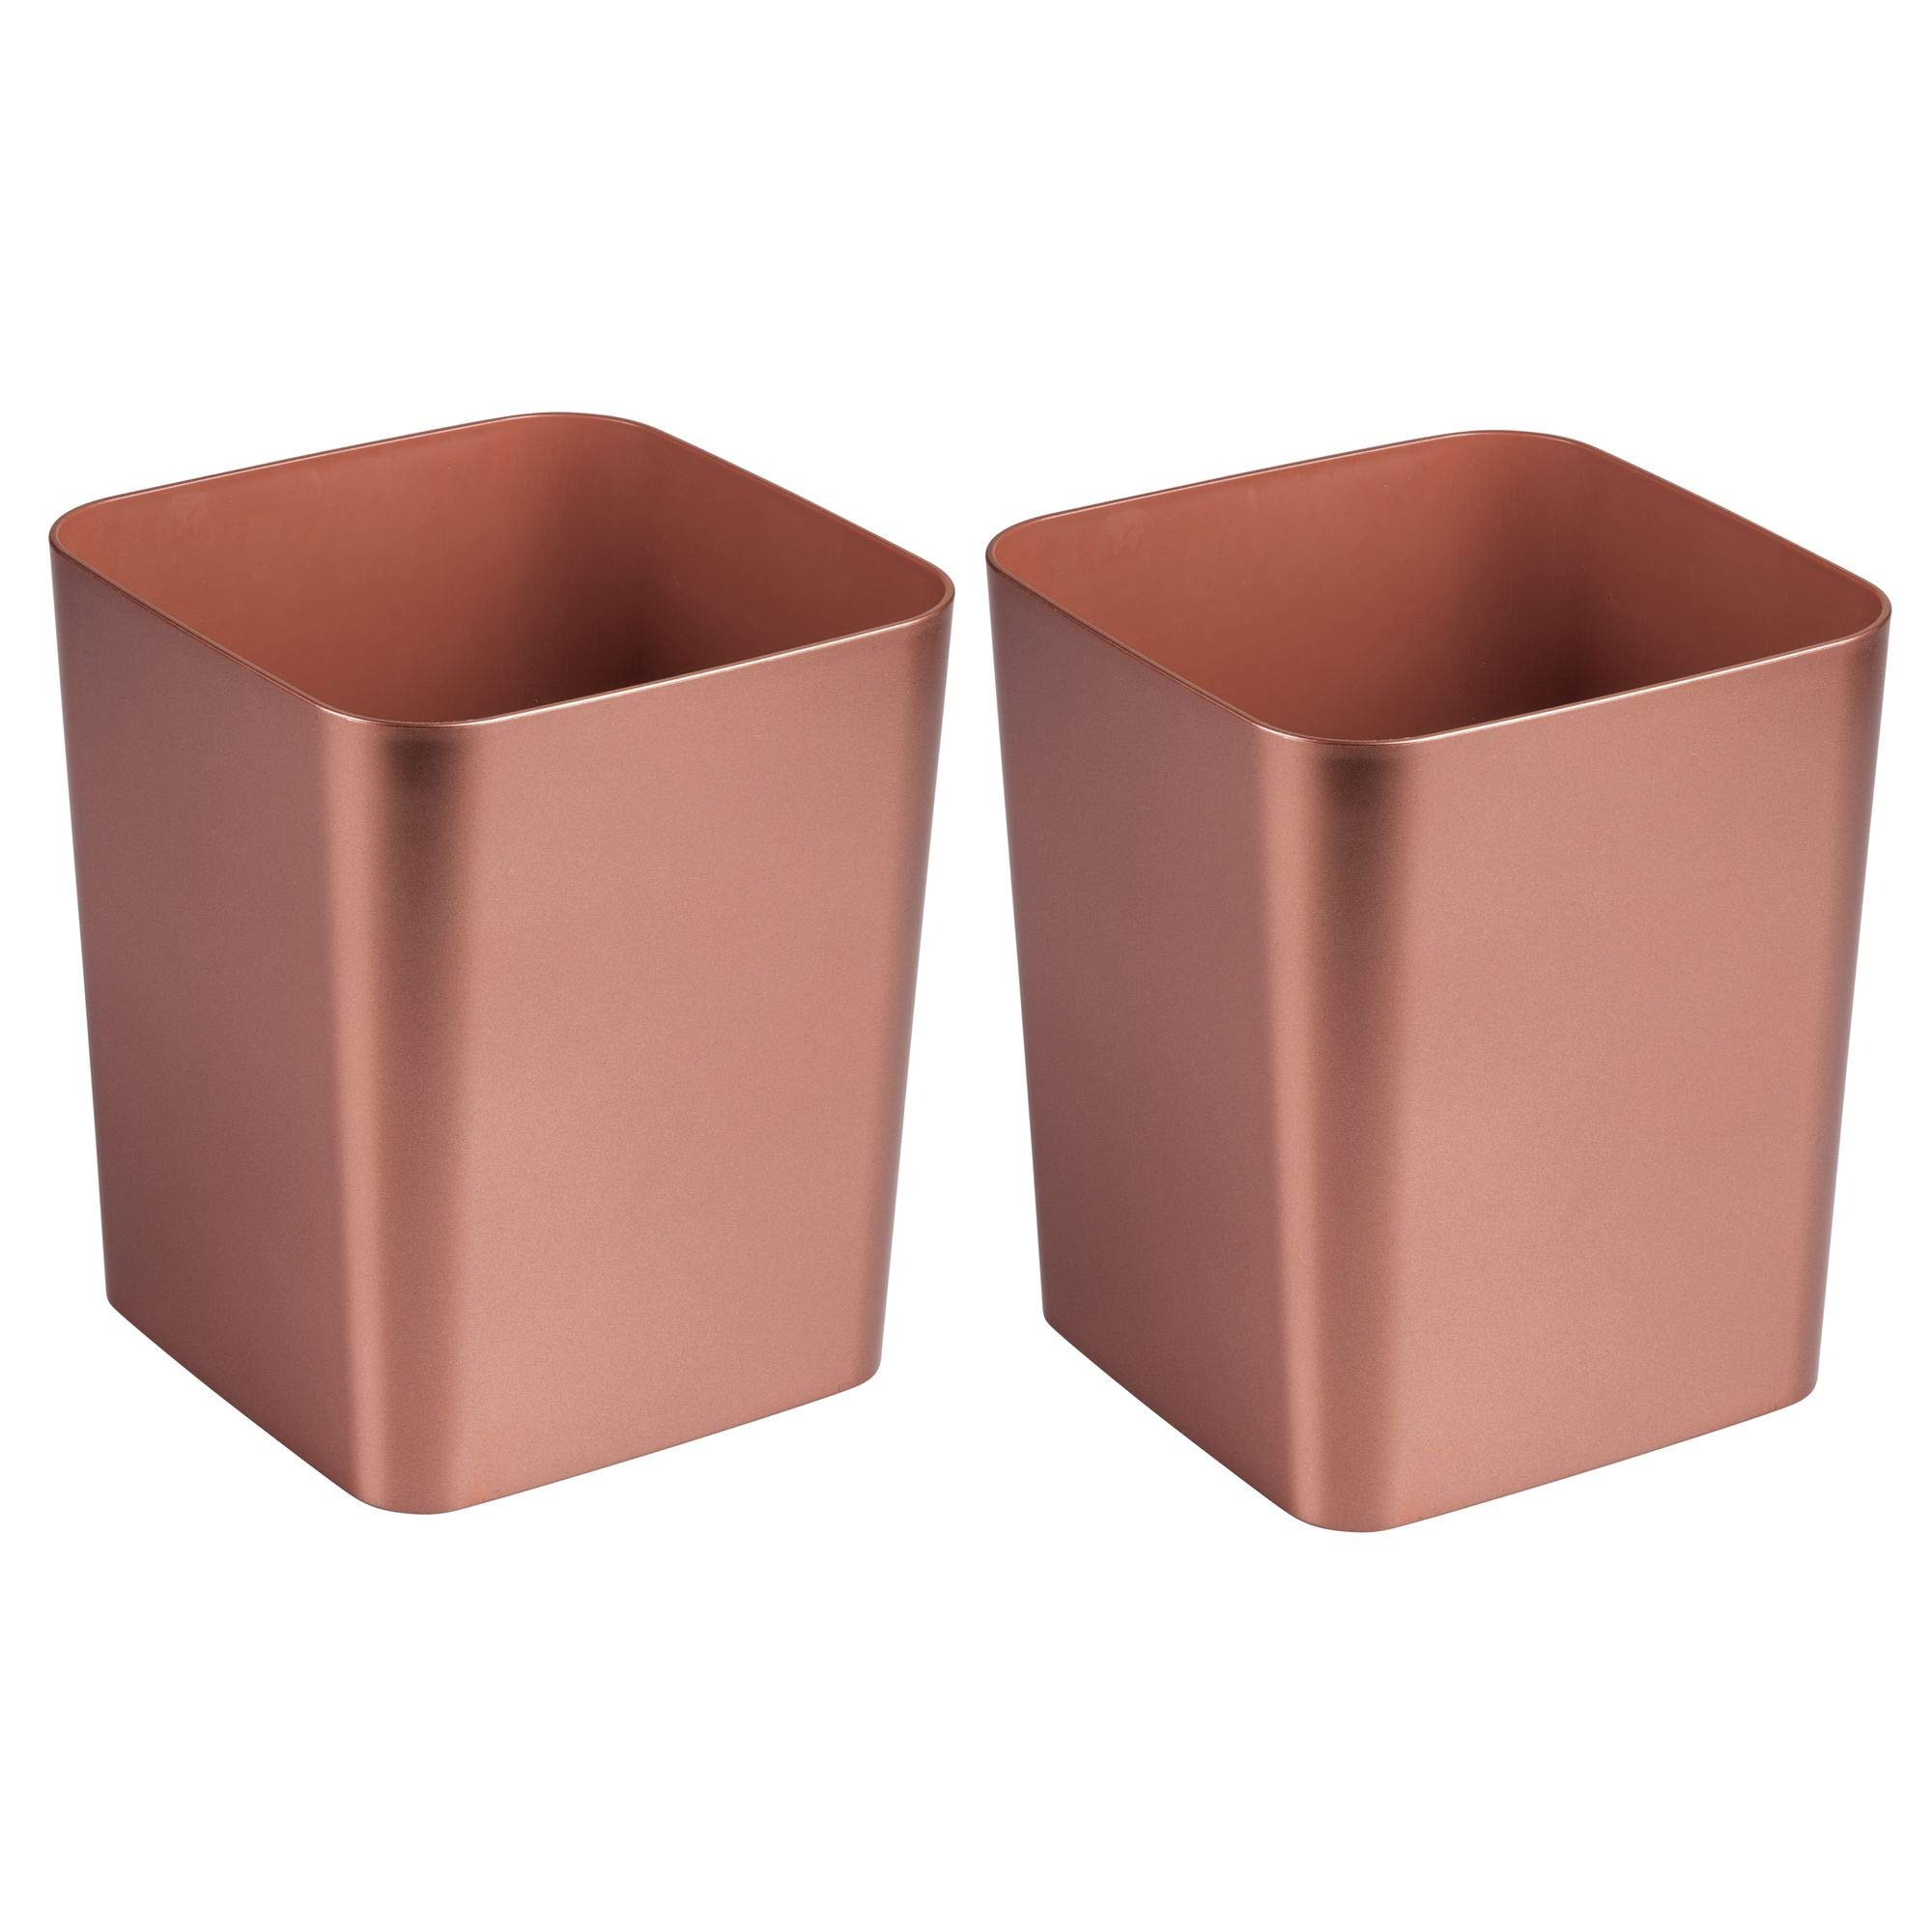 mDesign Square Shatter-Resistant Plastic Small Trash Can Wastebasket, Garbage Container Bin for Bathrooms, Powder Rooms, Kitchens, Home Offices - Pack of 2, Rose Gold Finish